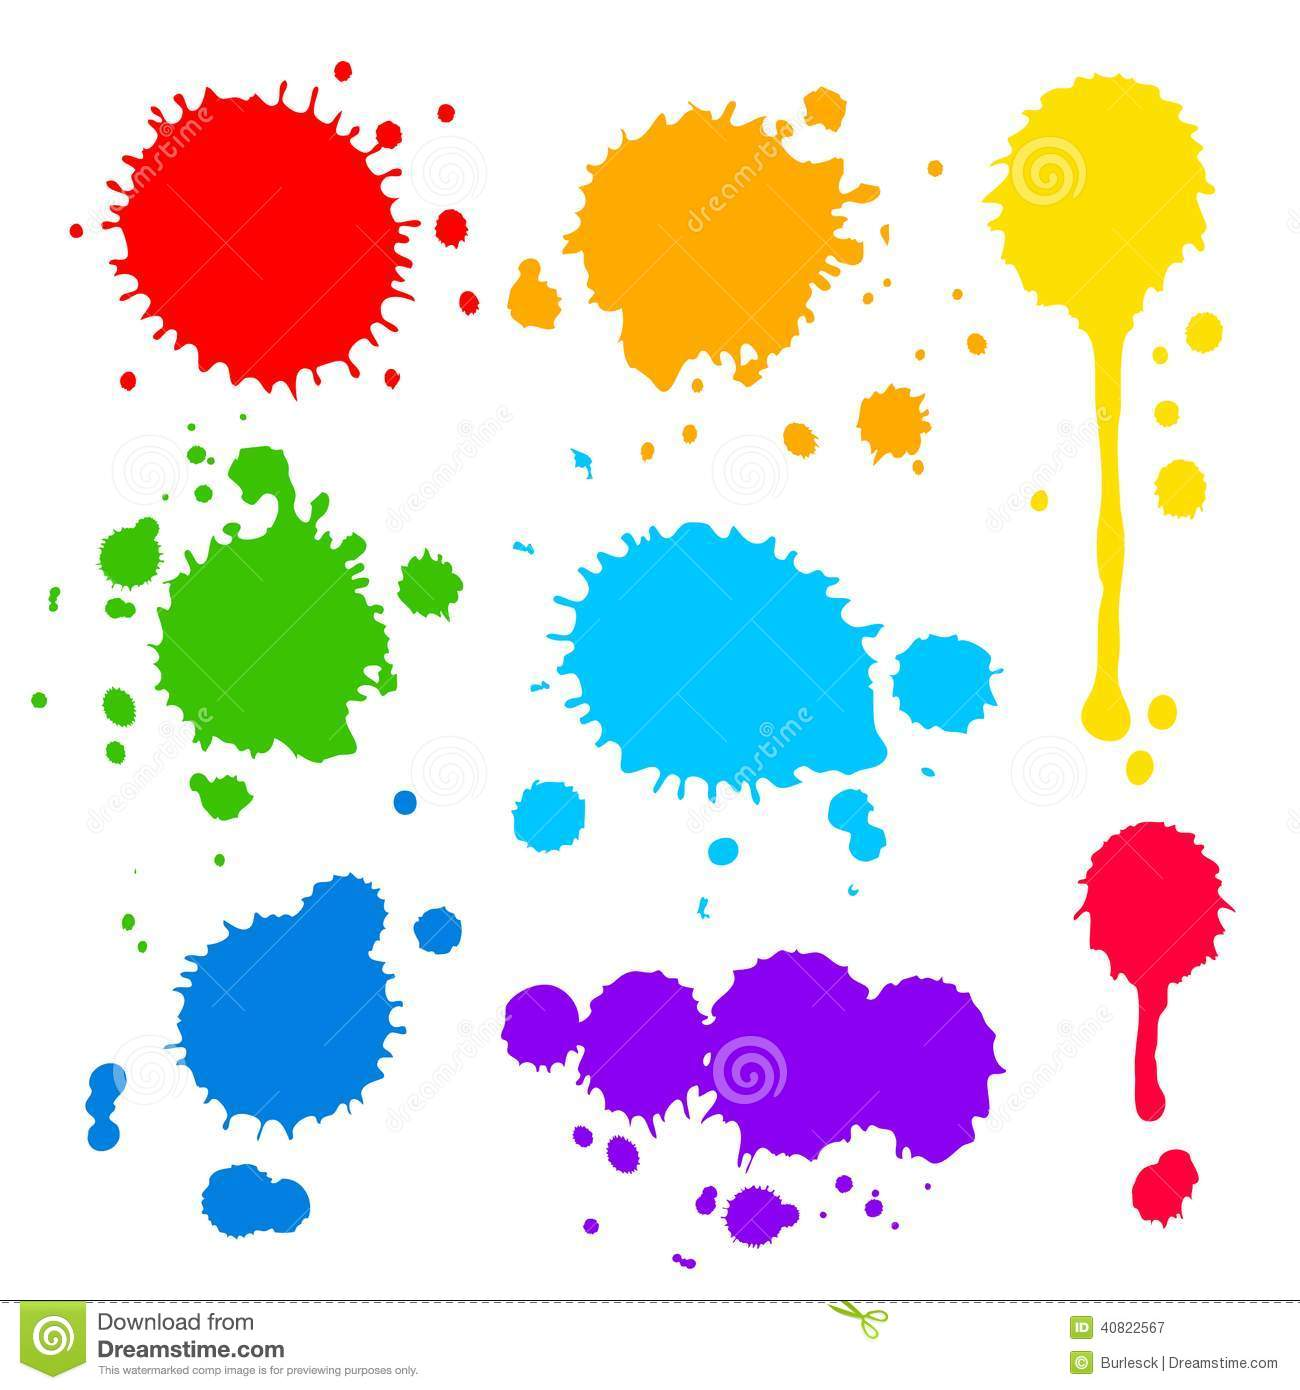 splats and blobs of colored paint stock vector image 40822567. Black Bedroom Furniture Sets. Home Design Ideas